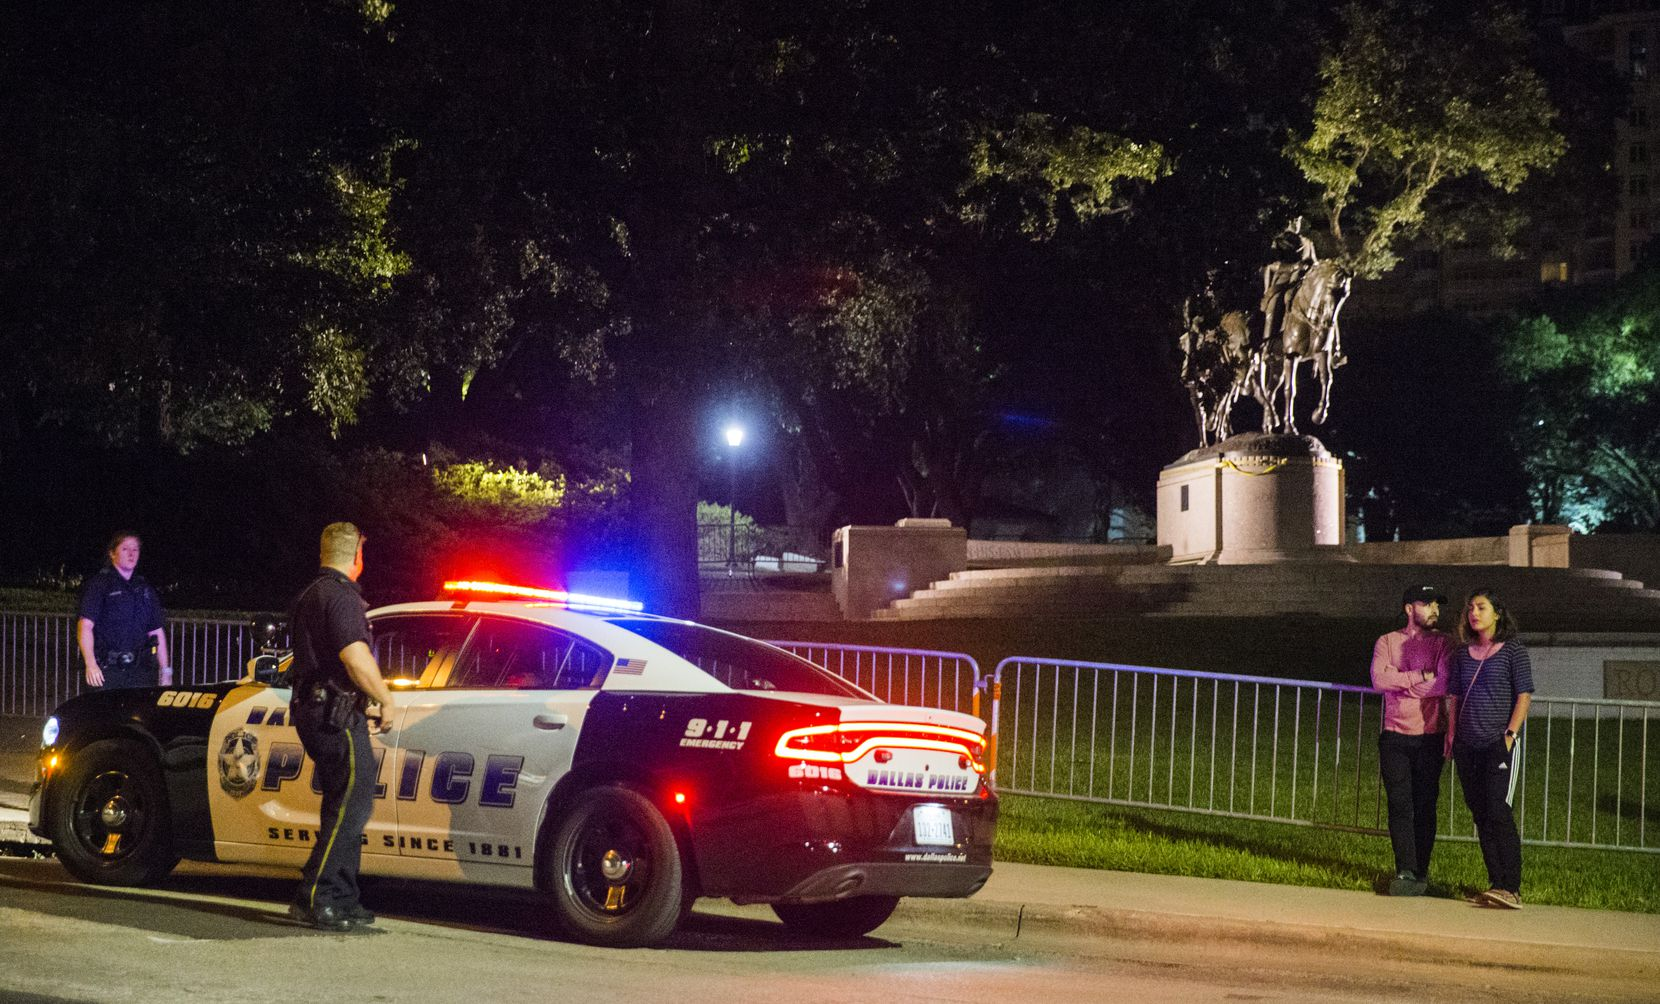 Police officers patrol the area around a statue of Robert E. Lee around 10:30 p.m. on Sept. 6, 2017 at Robert E. Lee Park in the Turtle Creek area of Dallas.